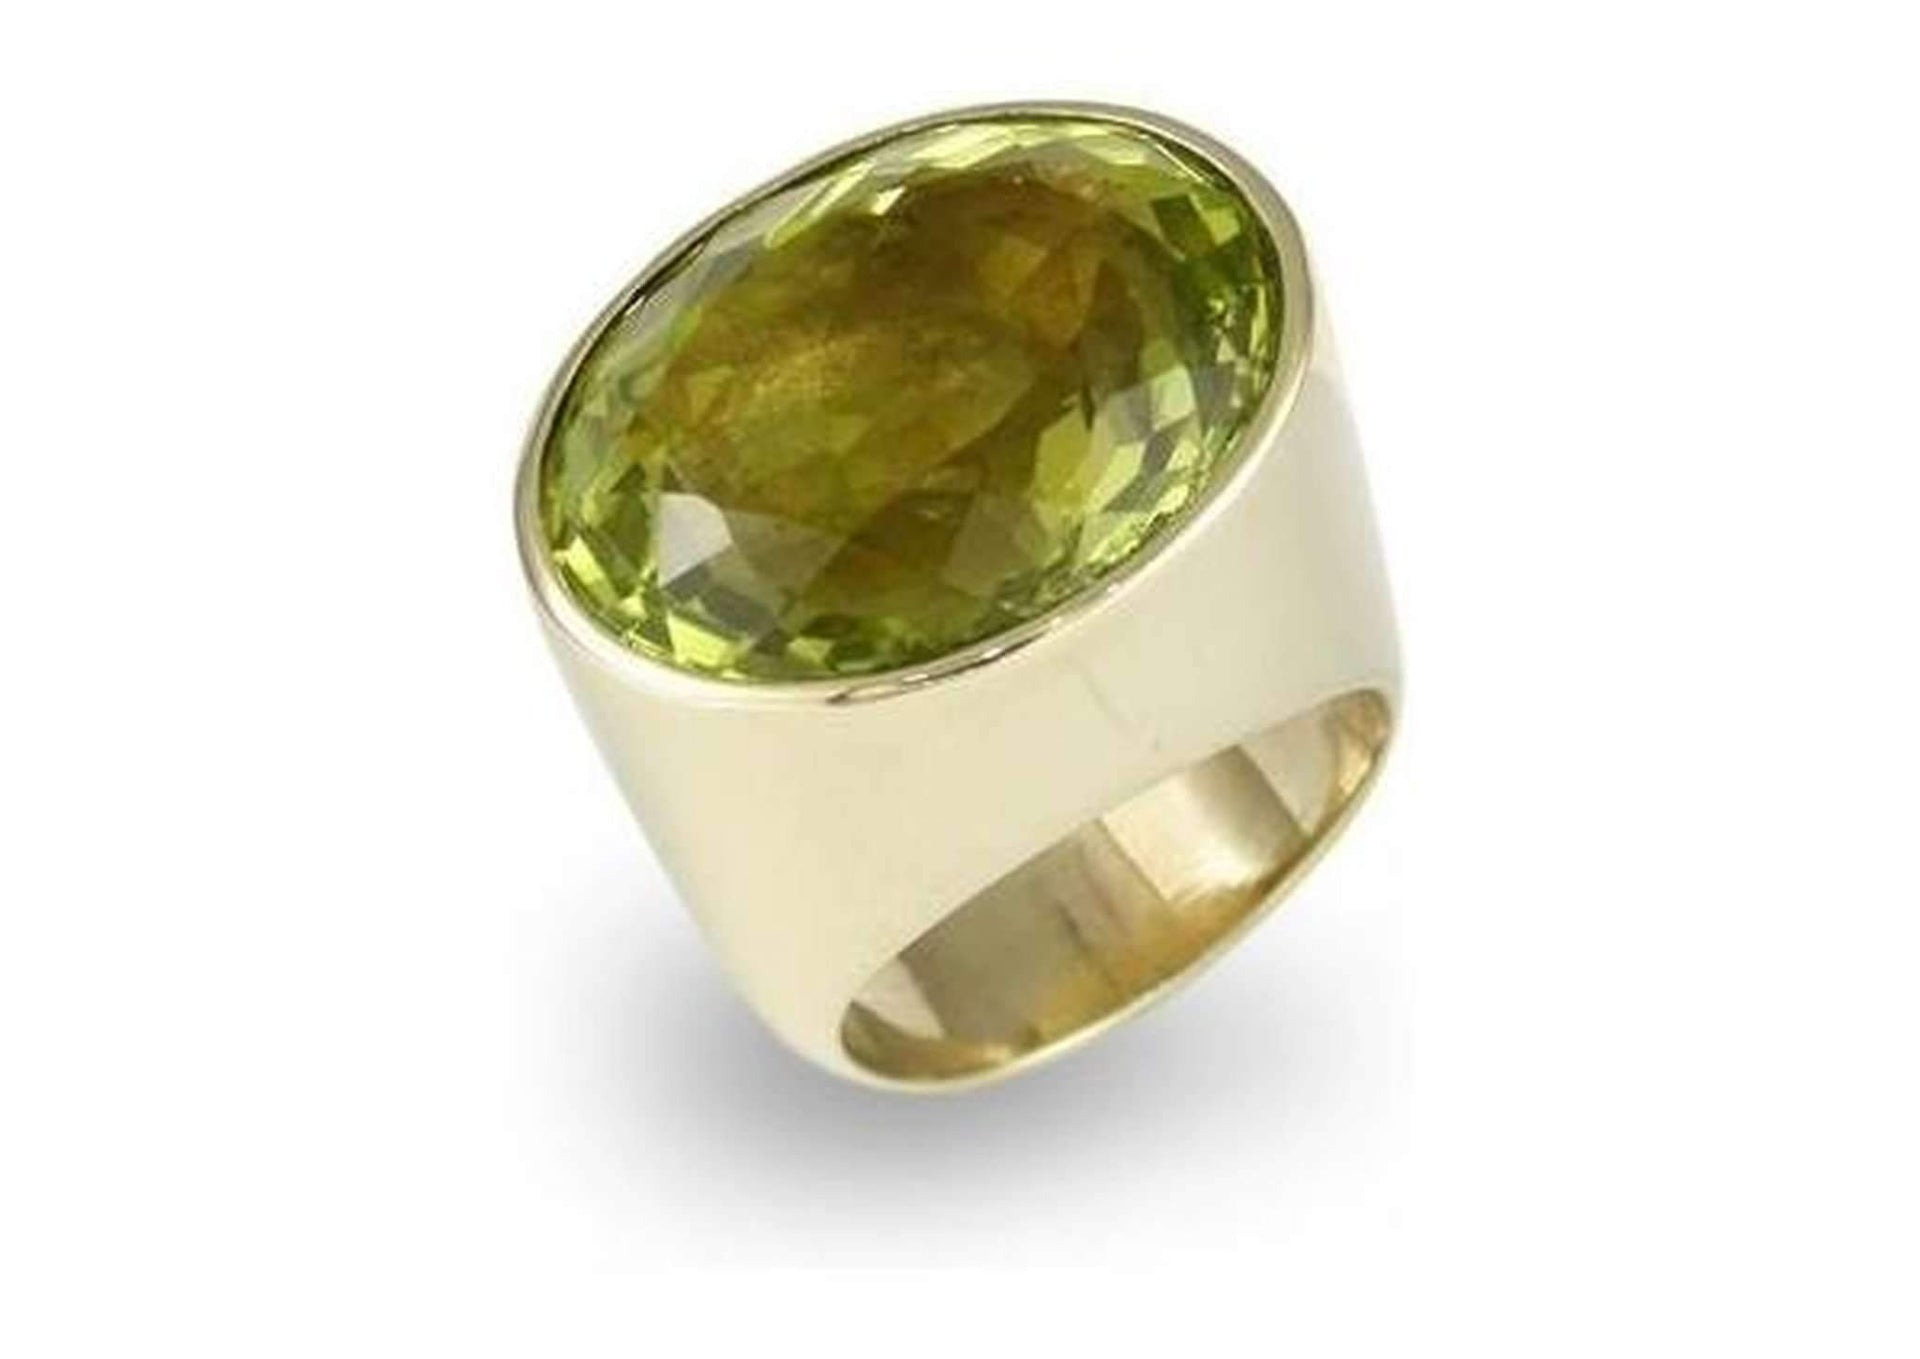 9ct Gold & Lemon Cubic Zirconium Ring   - Jens Hansen